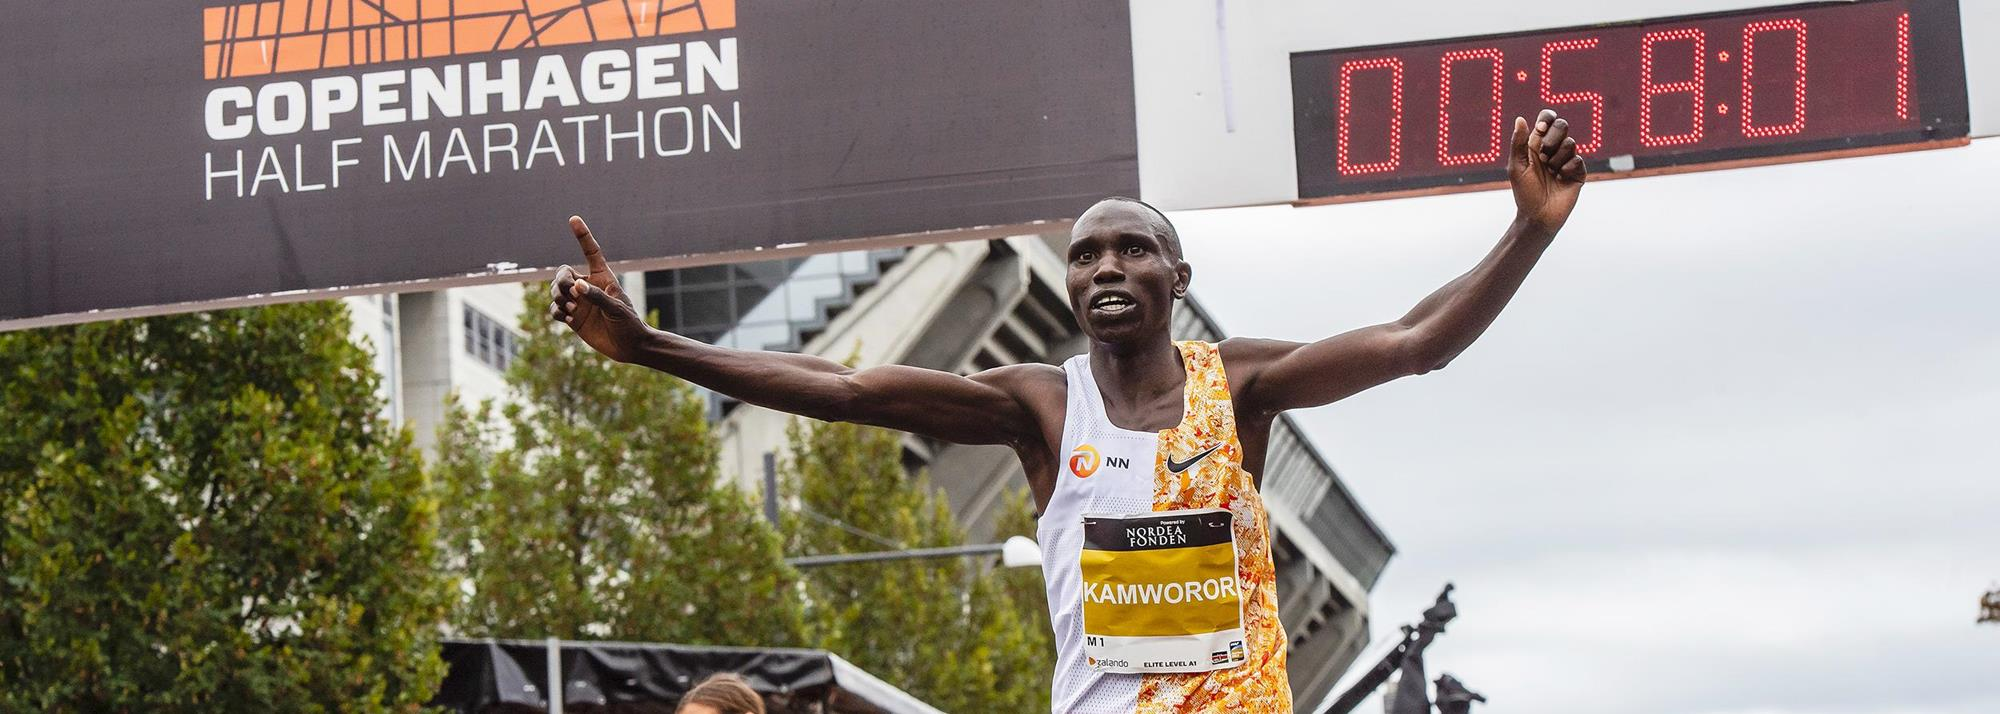 Ratified: Kamworor's 58:01 world half marathon record